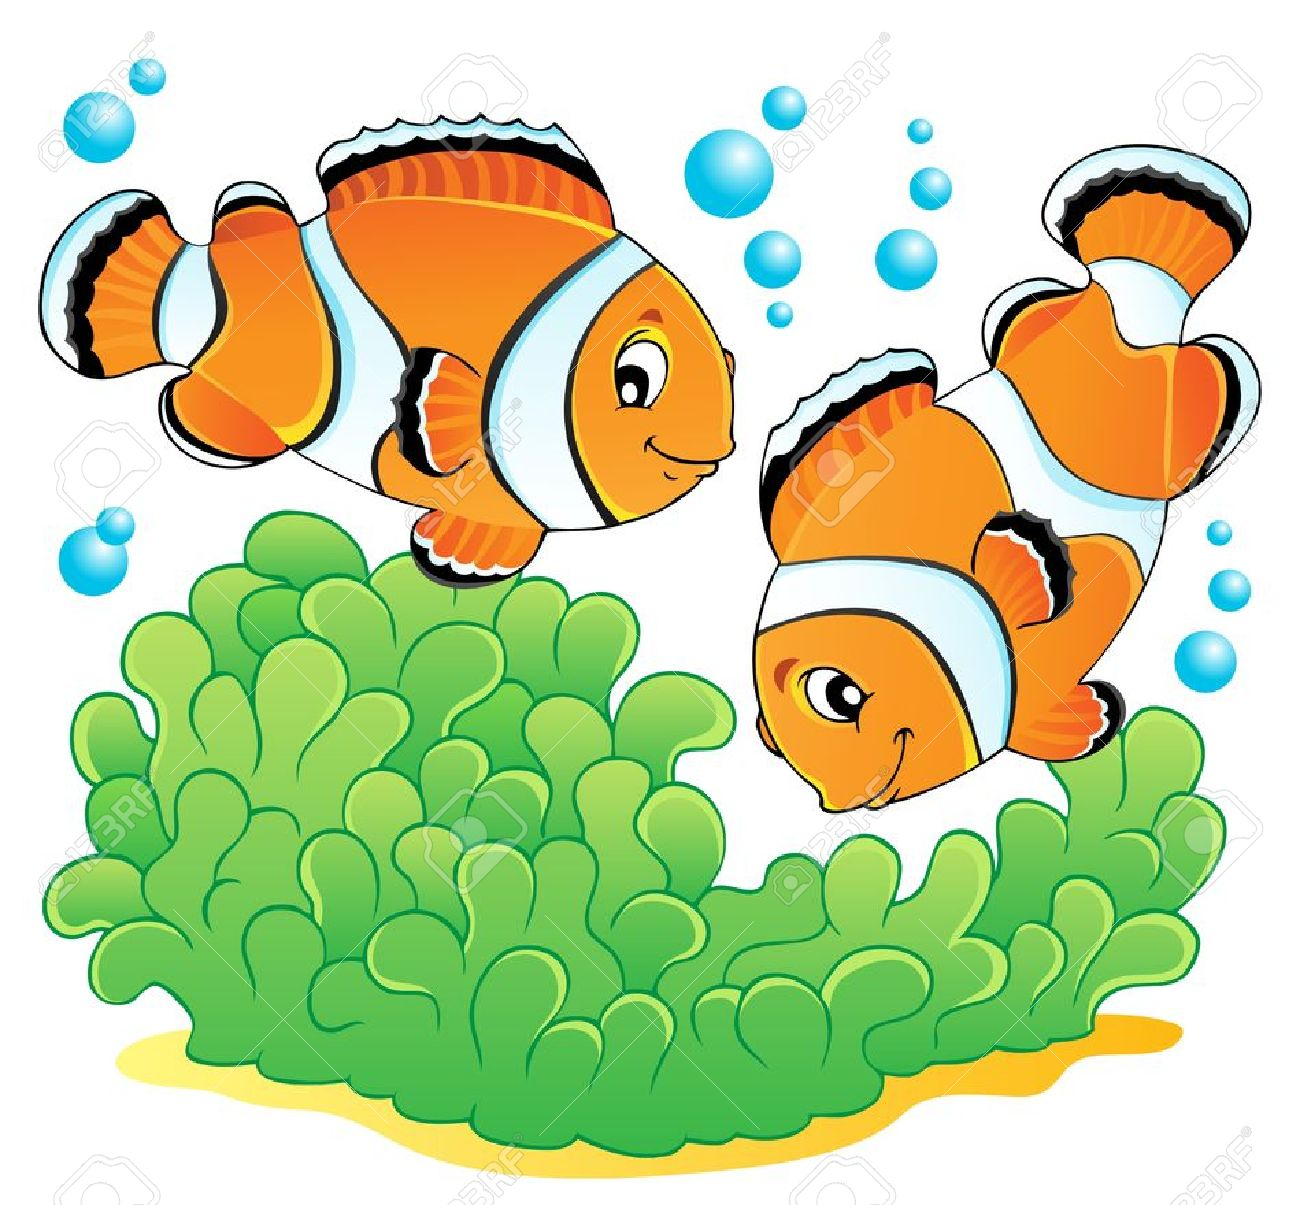 hight resolution of clownfish and sea anemone clipart download